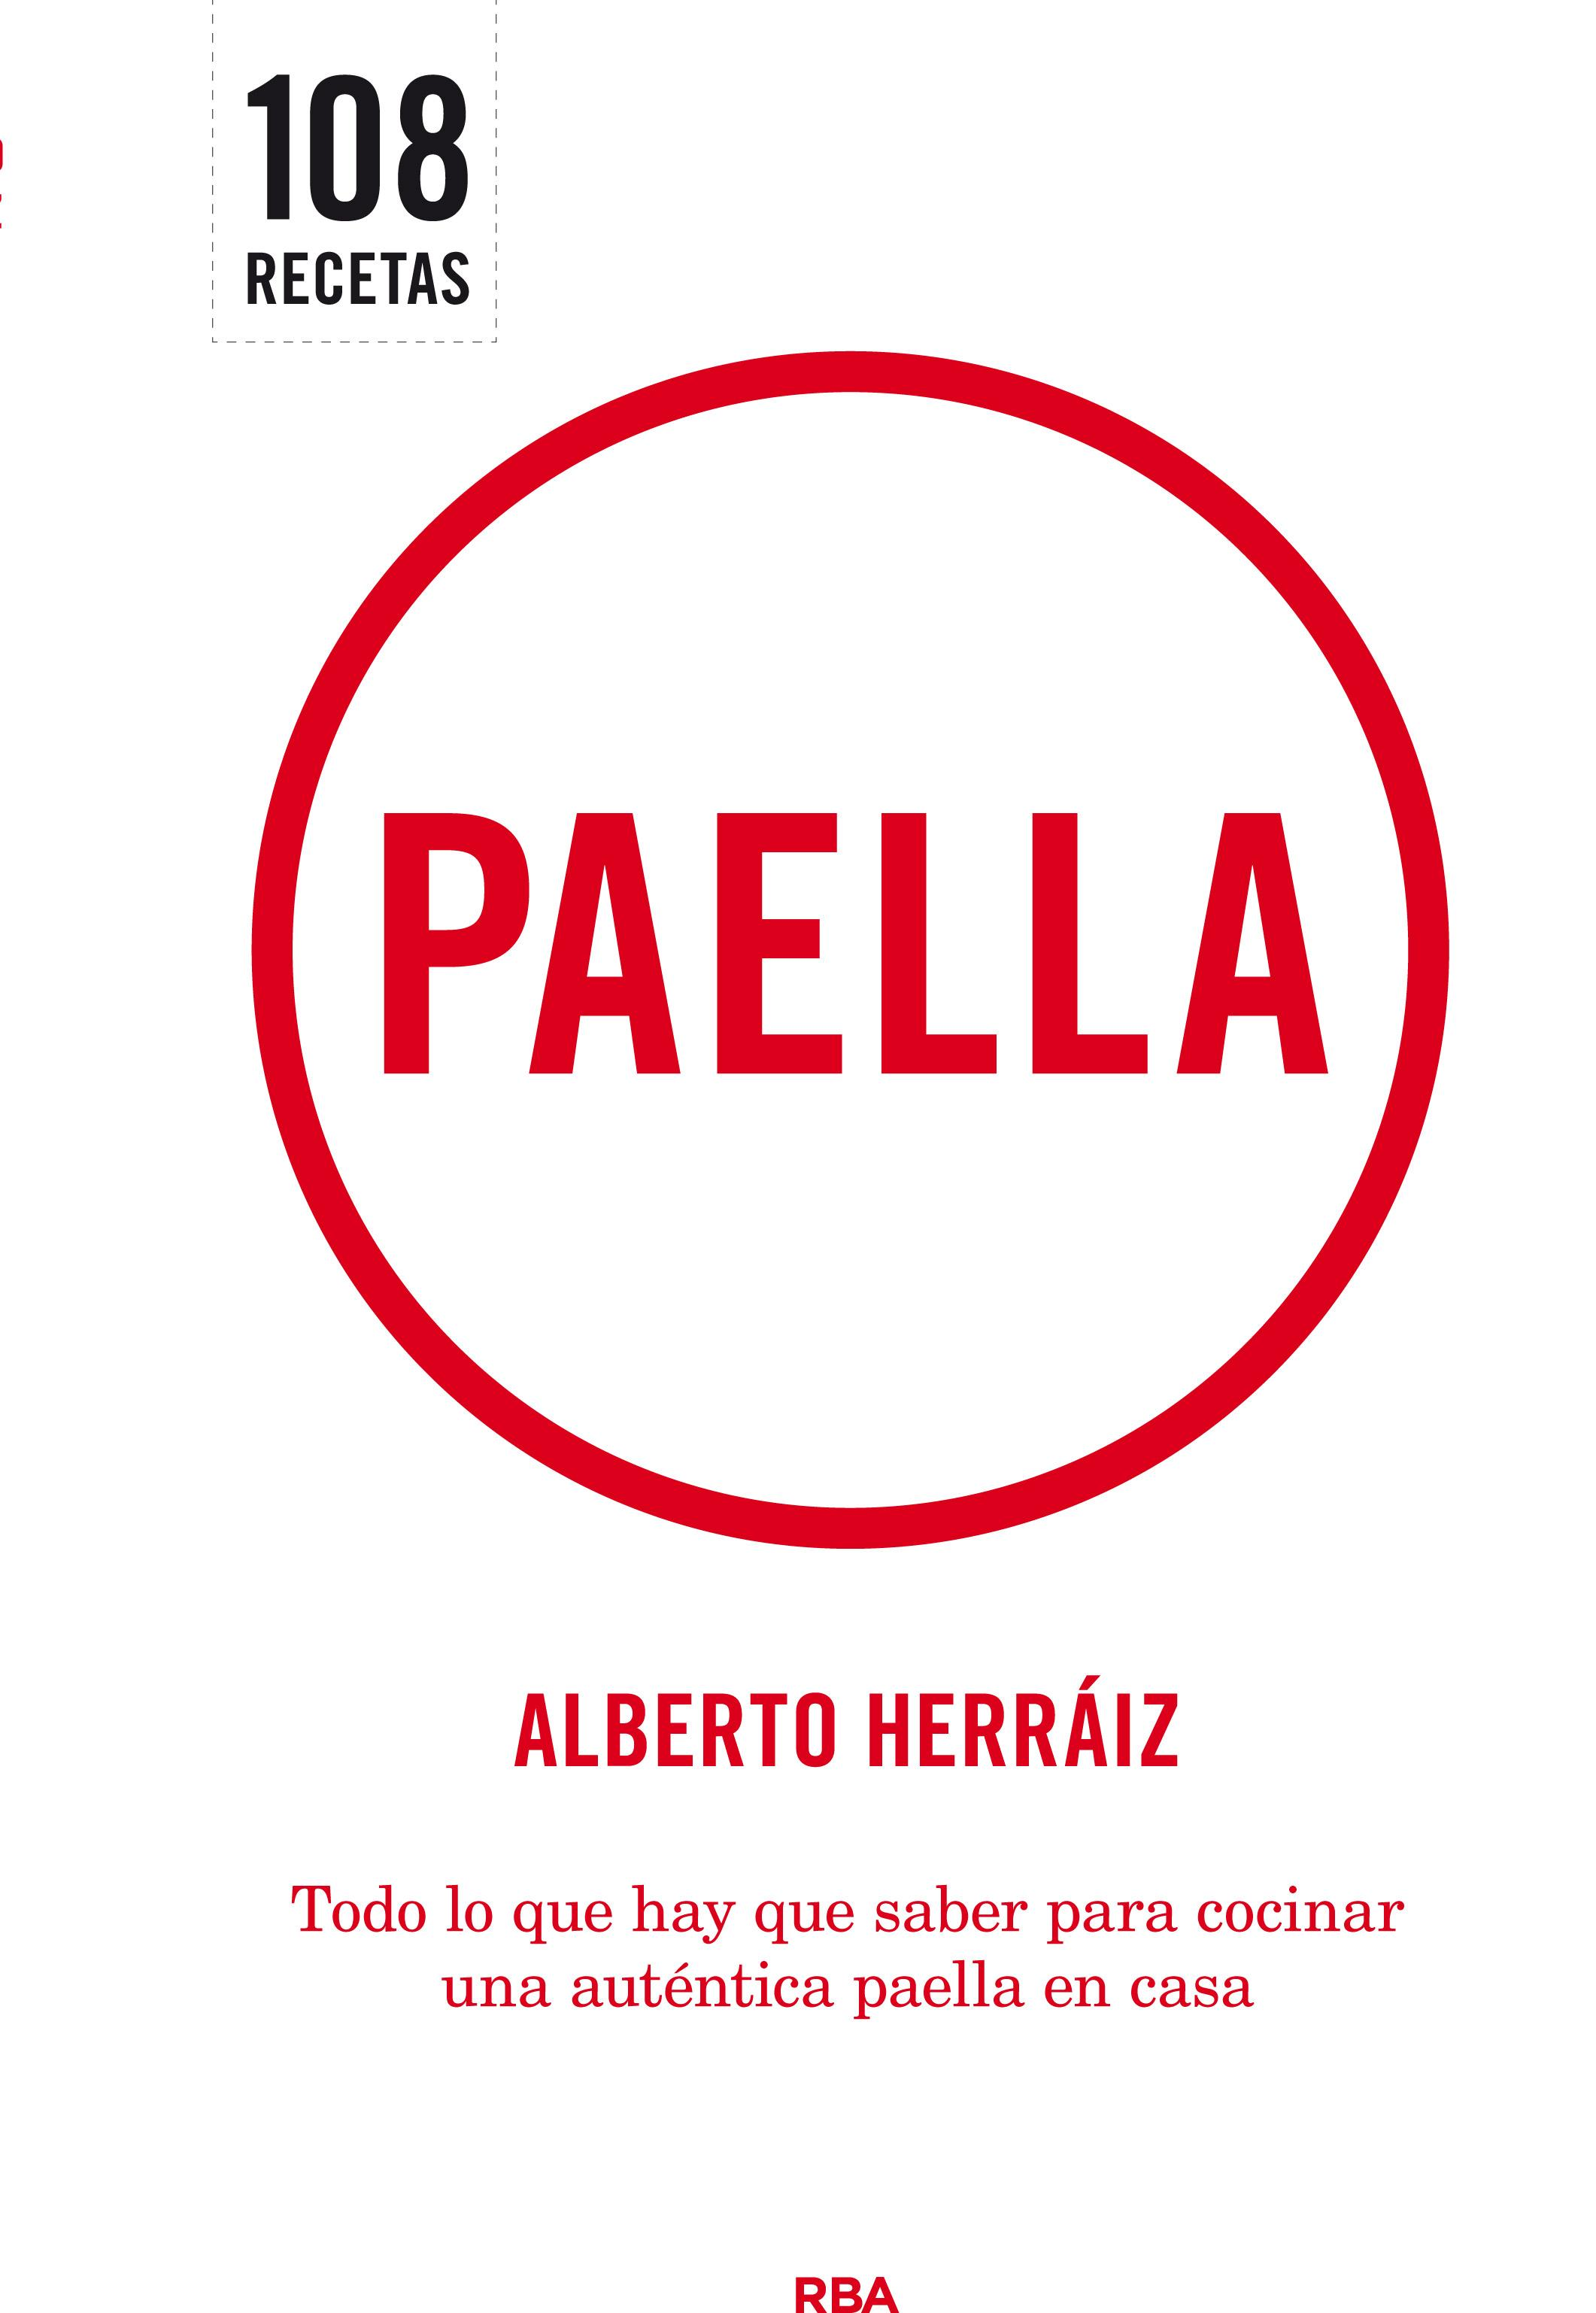 Paella, y arroces - $21.900